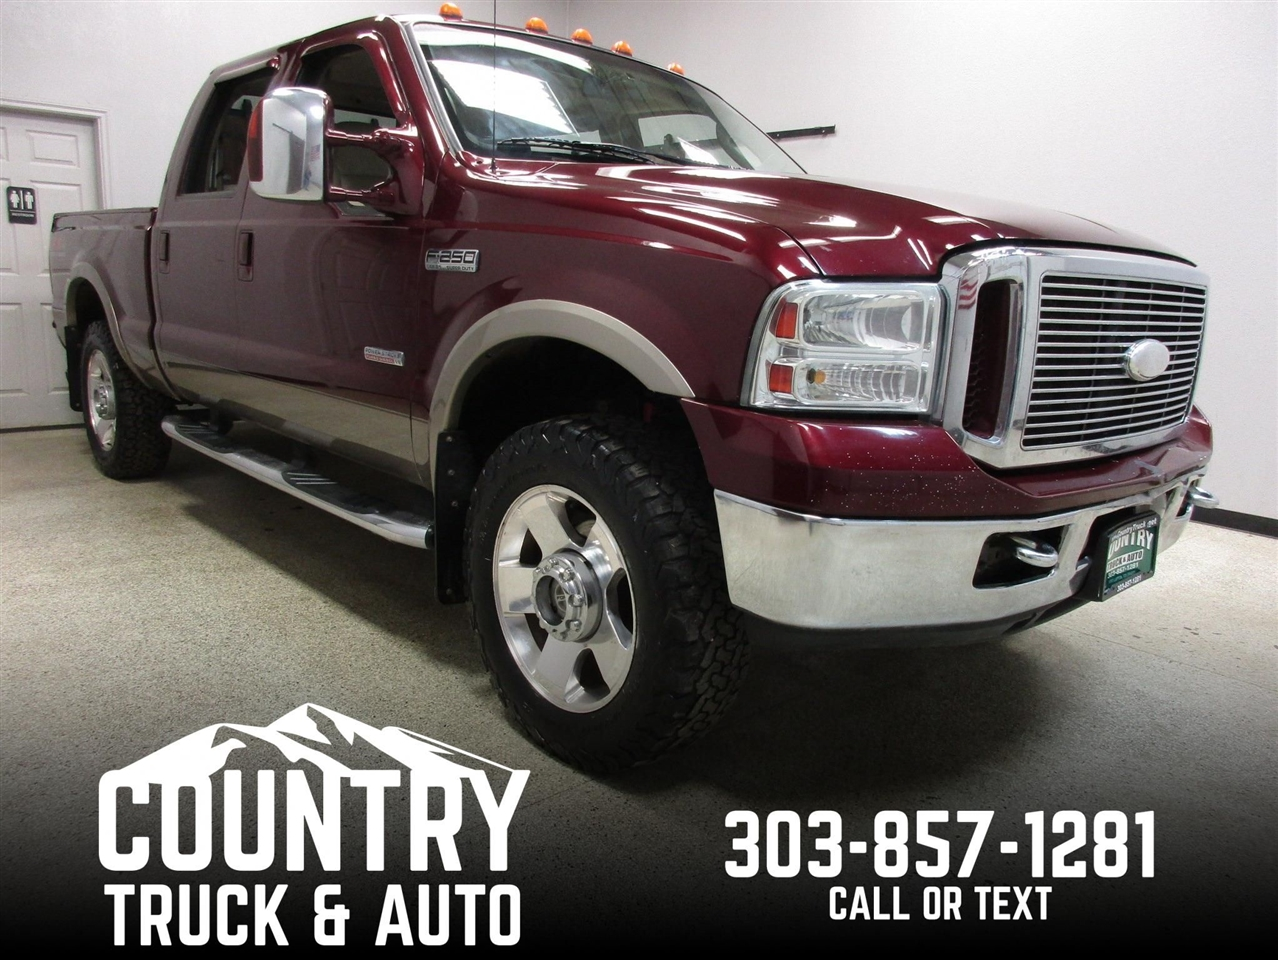 2006 Ford Super Duty F-250 Lariat Crew Cab Short Bed 4WD